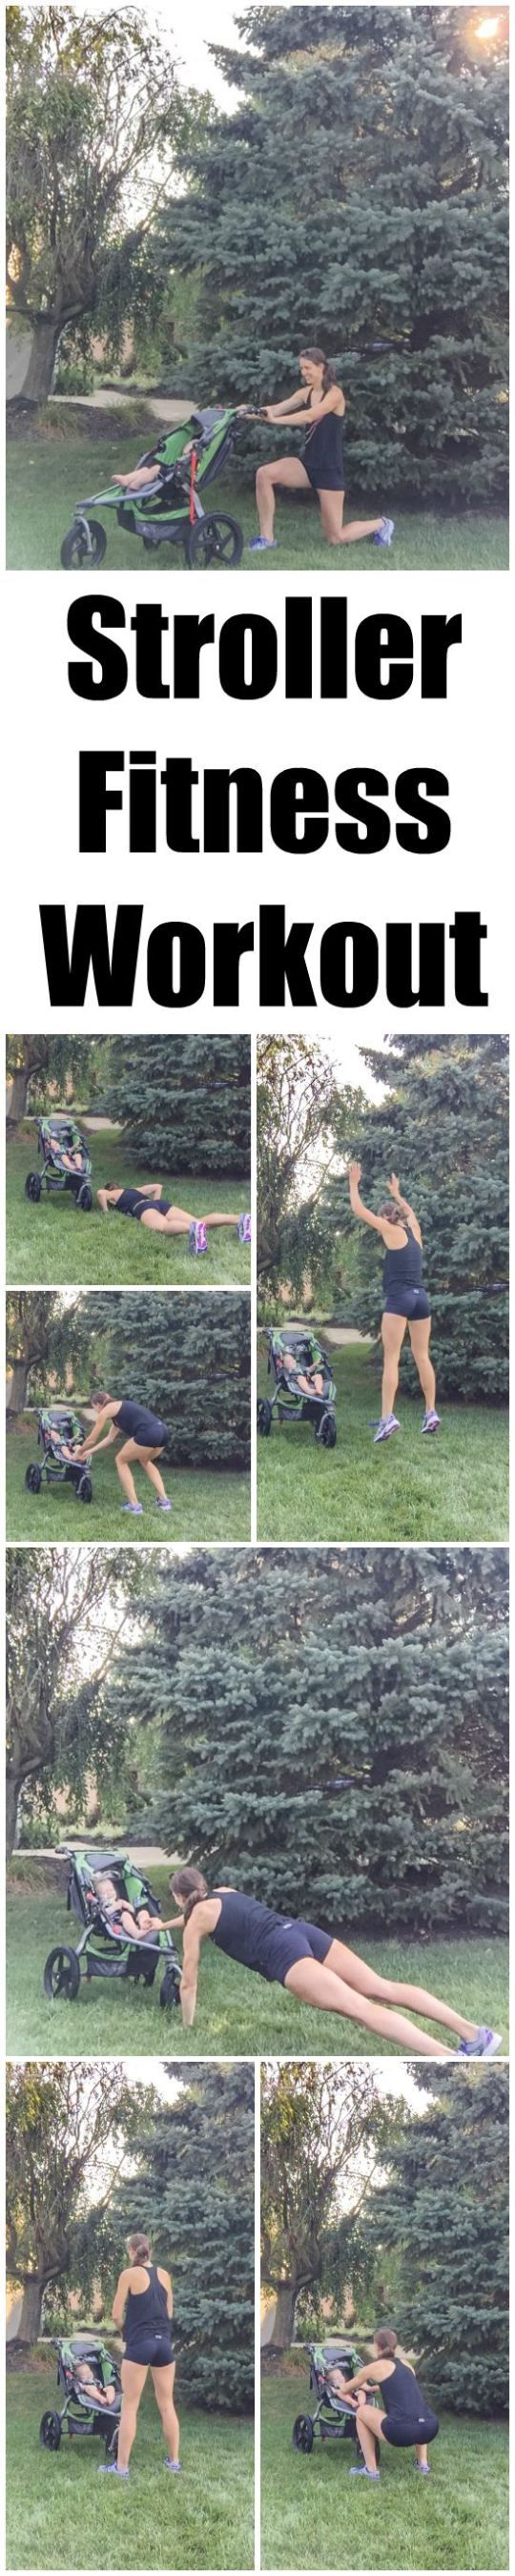 This Stroller Workout is a fun way to break up your next walk or run by adding short fitness breaks that include lunges, squats, burpees and planks. Fun for you AND baby! #ad #makeyourmove